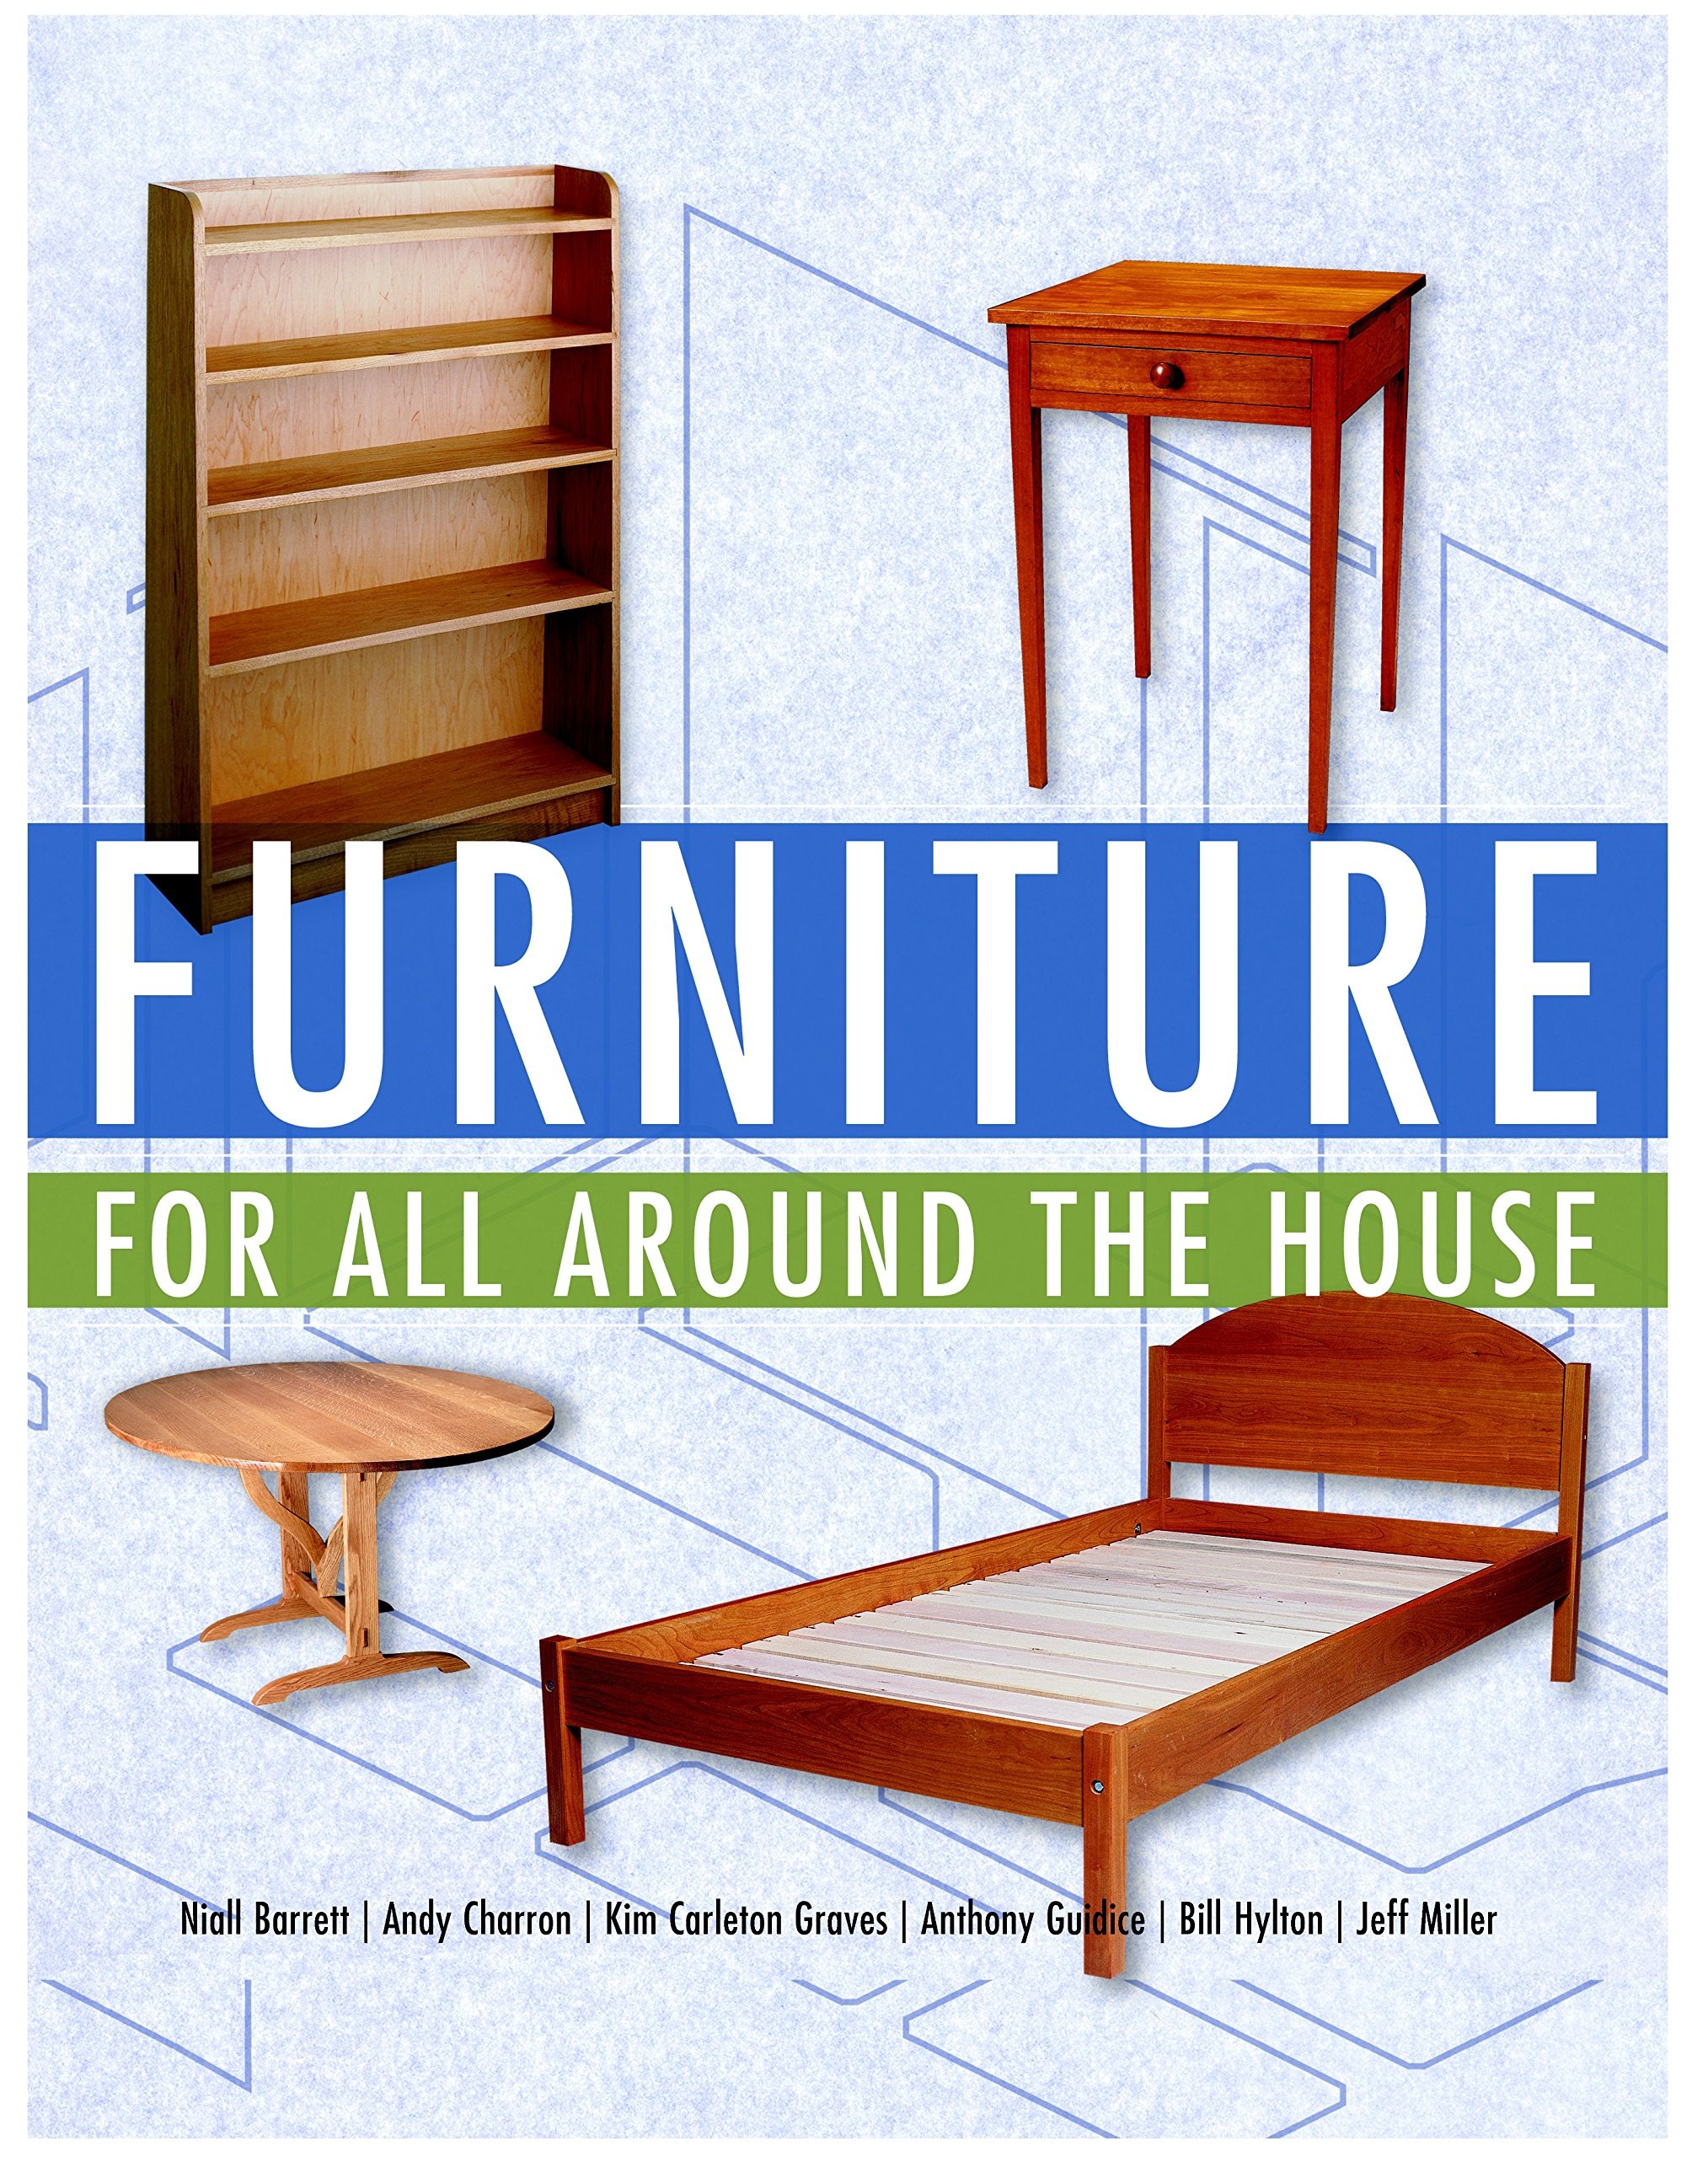 Furniture For All Around The House: Series: Woodworking For The Home: Niall  Barrett, Kim Carleton Graves, Masha Zager: 9781561588534: Amazon.com: Books